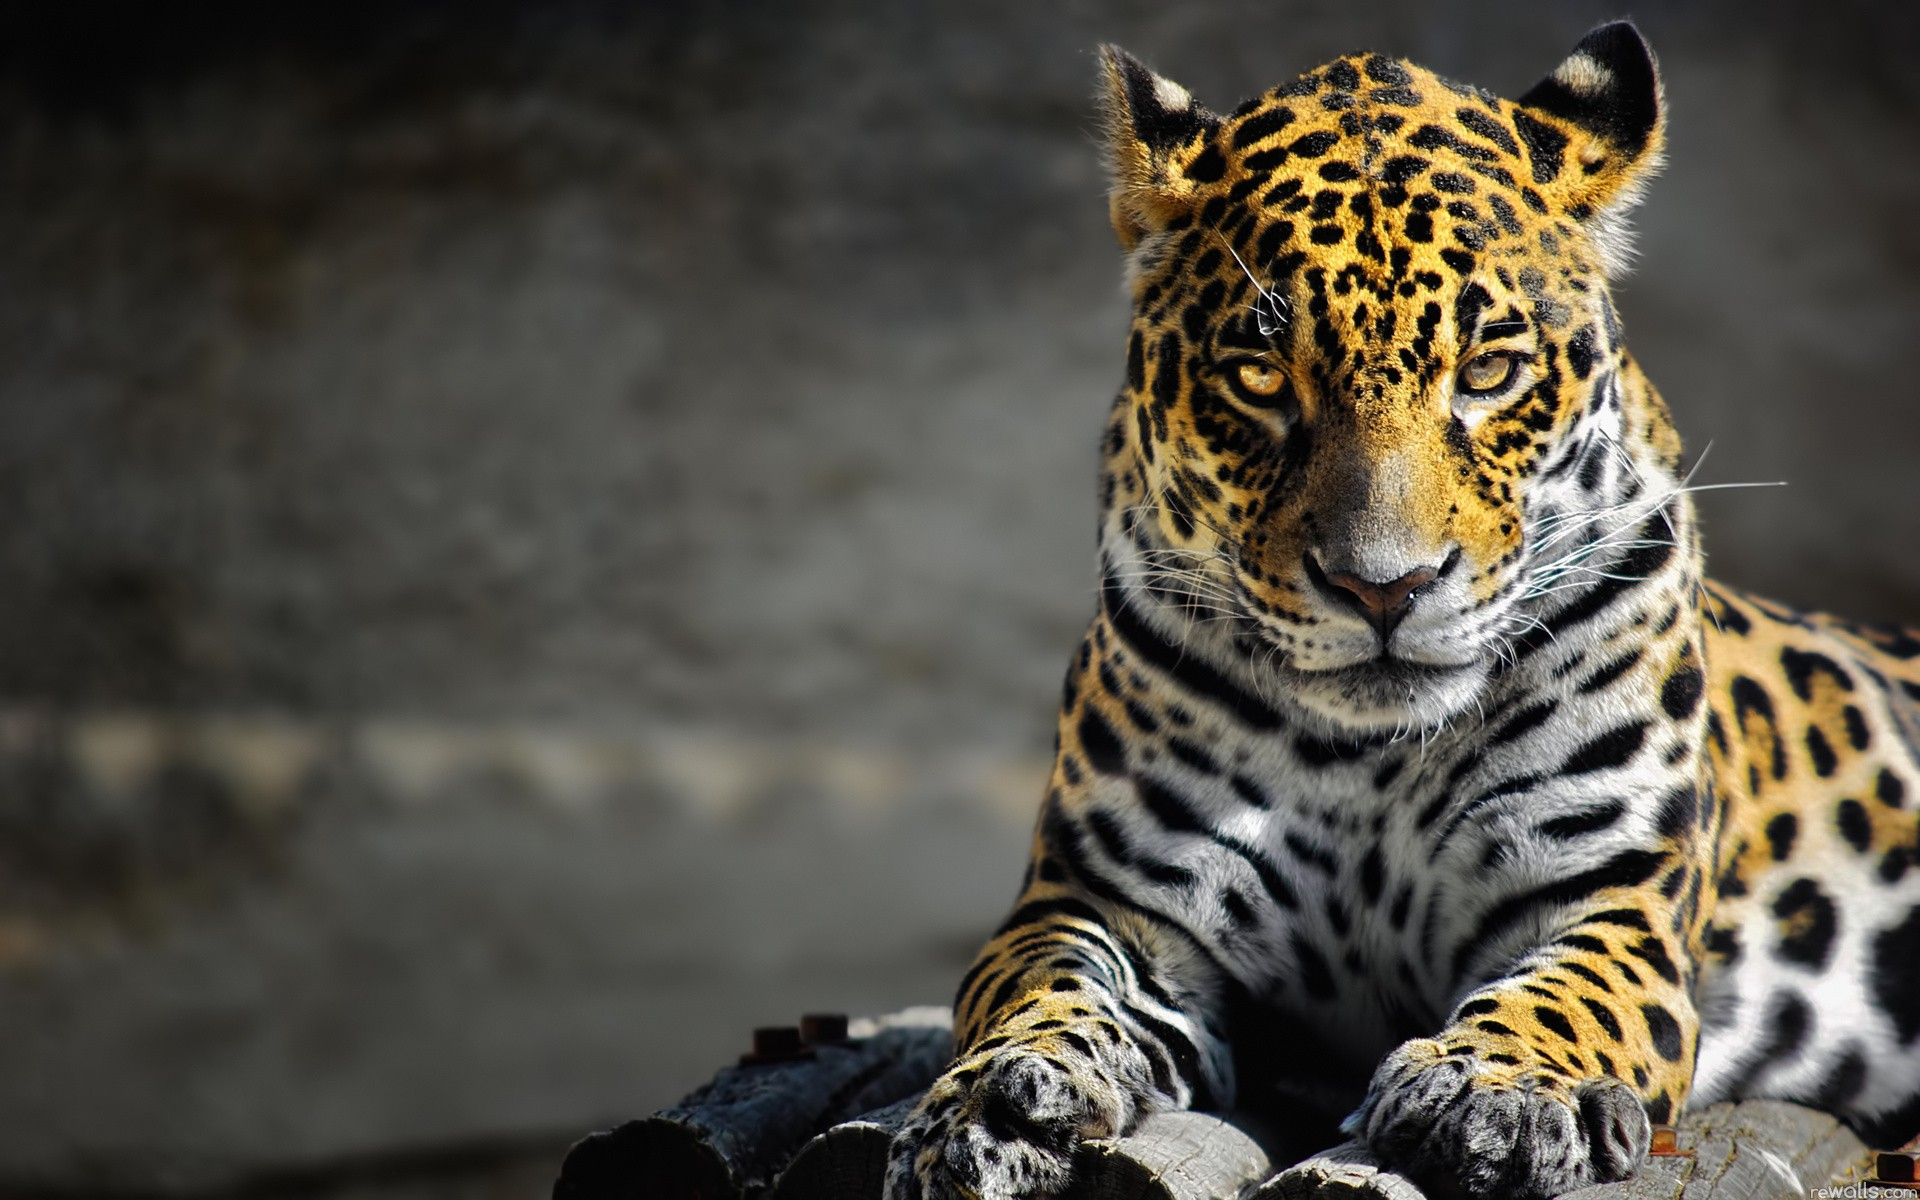 Lazy leopard full hd wallpaper and hintergrund 1920x1200 - Jaguar animal hd wallpapers ...